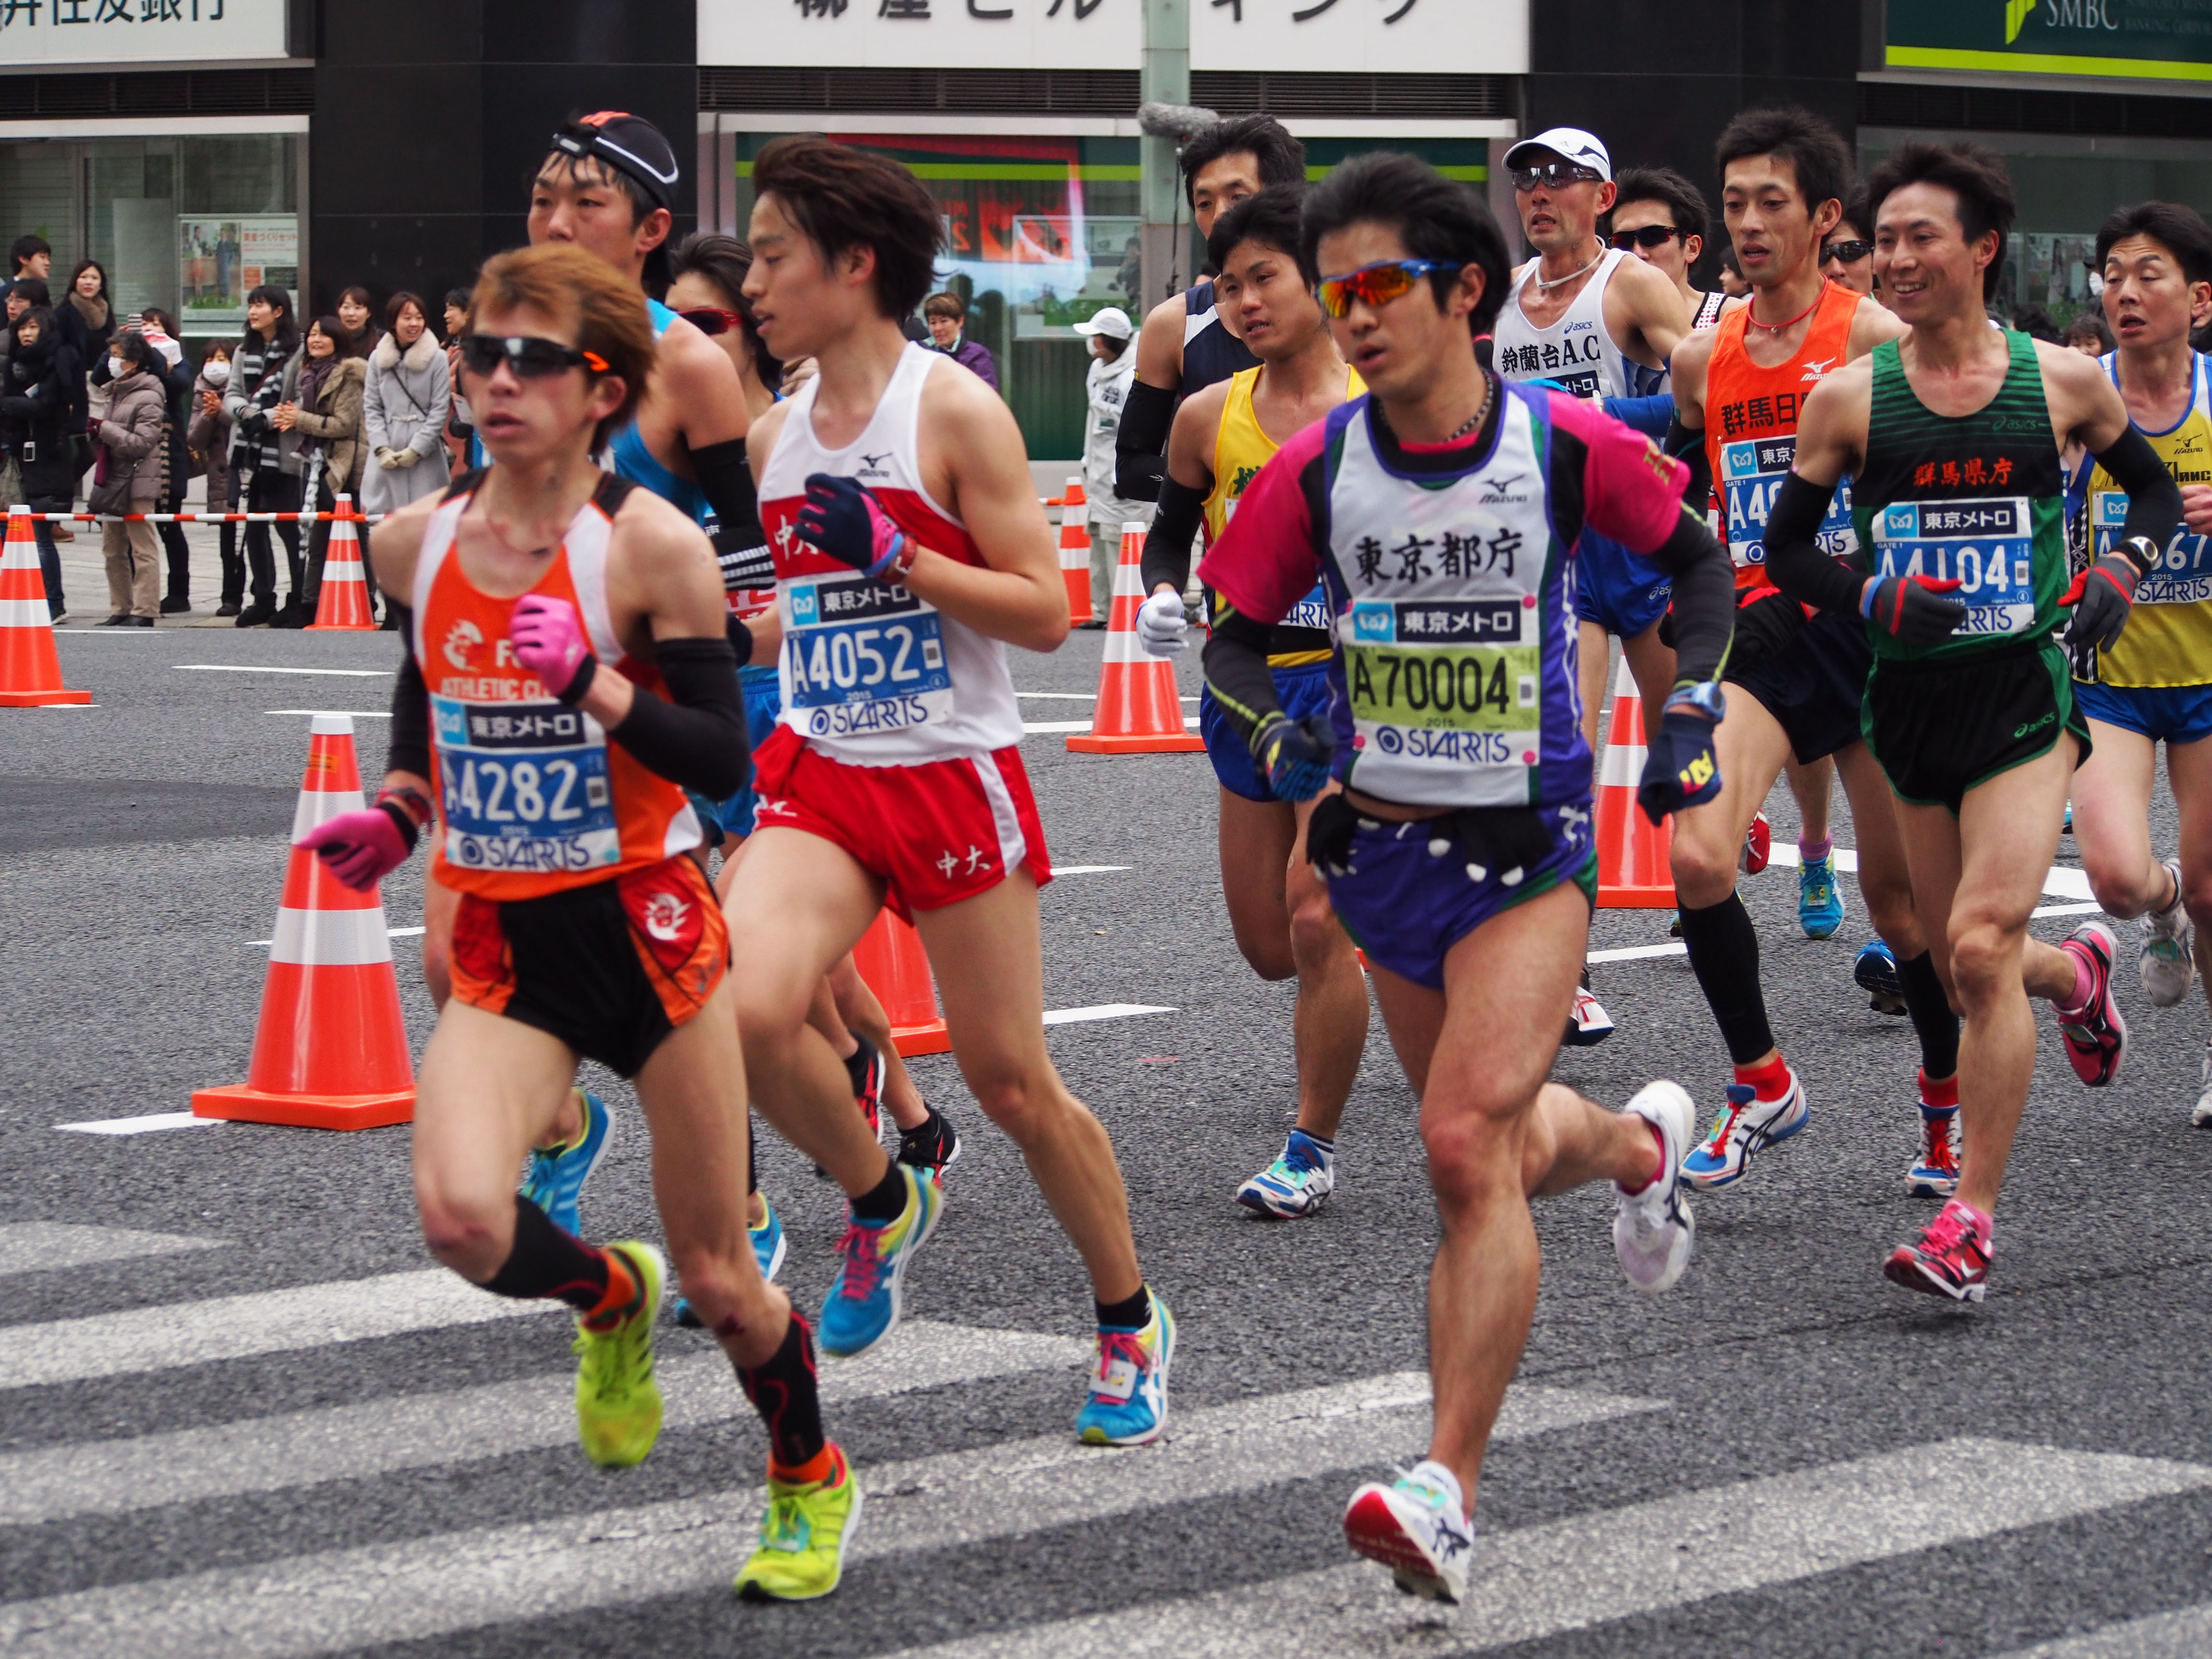 Japan's runners need a change of pace | The Japan Times